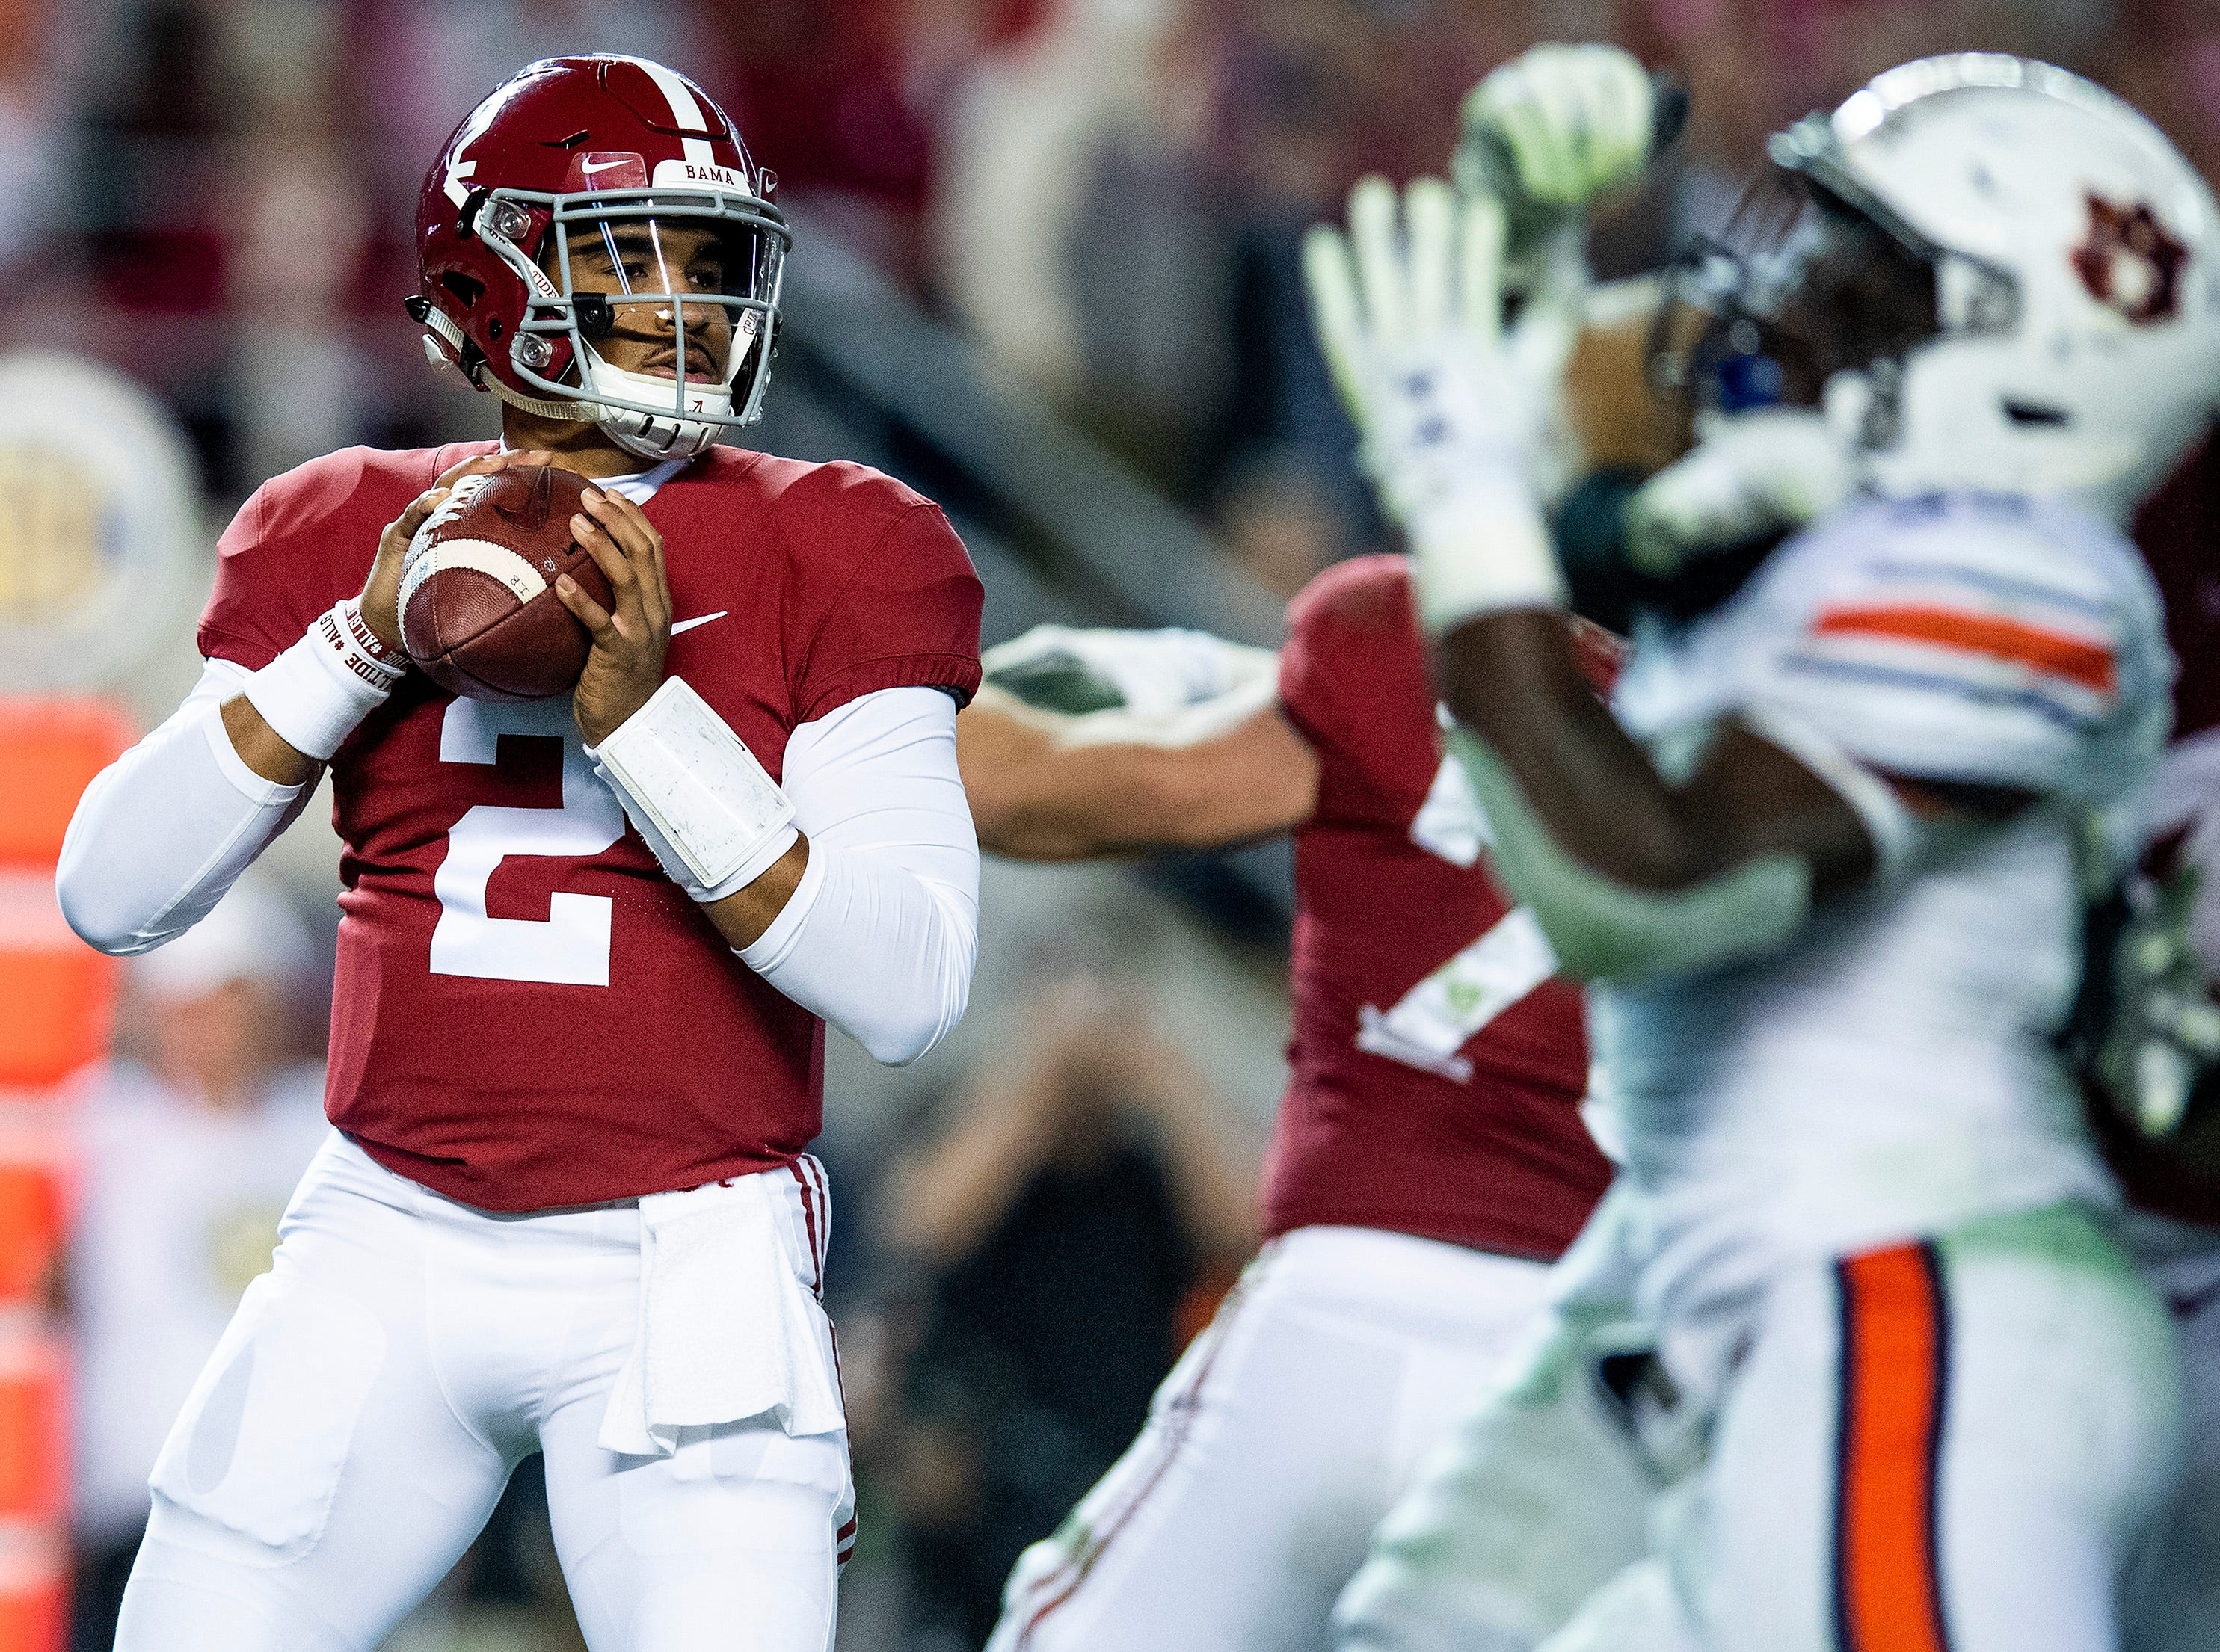 Alabama quarterback Jalen Hurts (2) looks to pass against Auburn in second half action during the Iron Bowl at Bryant-Denny Stadium in Tuscaloosa, Ala., on Saturday November 24, 2018.